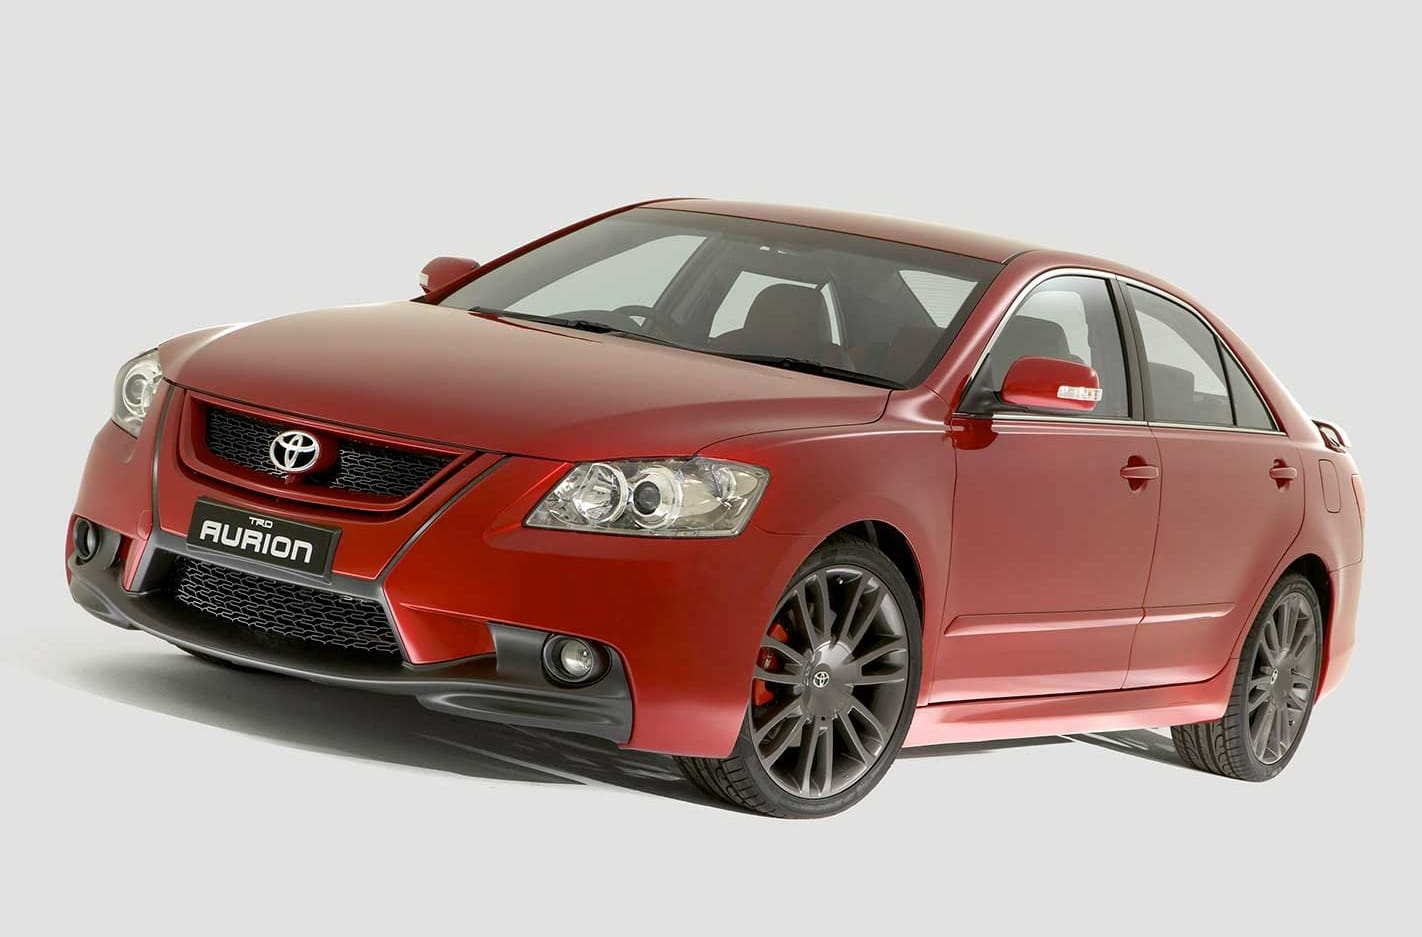 2007 Toyota TRD Aurion Fast Car History Lesson